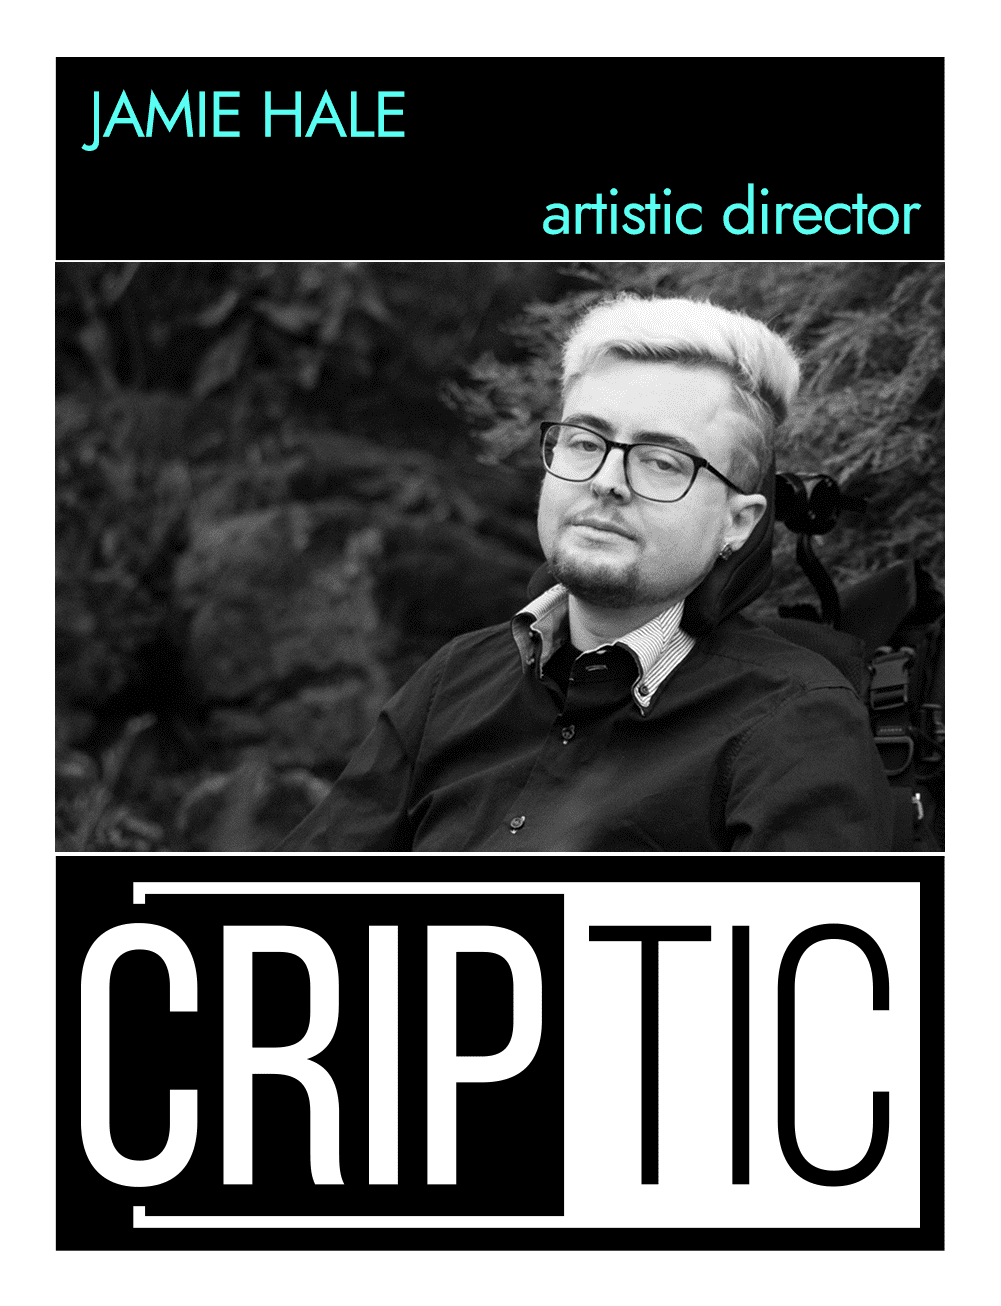 This is the back of an artist announcement card for Jamie Hale. The design is styled on an American baseball card. The card has a thin white border. At the top of the card, there is a thick black band with the artist name, Jamie, and a description of their role in CRIPtic, as Artistic Director. Below this, there is a black and white portrait photograph of Jamie. In it, Jamie has cropped hair, bleached blonde and longer on top. They have a round face and are wearing glasses and a black shirt. Their head is on their wheelchair headrest. They emerge from the bushes like a queer forest creature. Below the photo, there is a large black and white logo which reads CRIPtic.